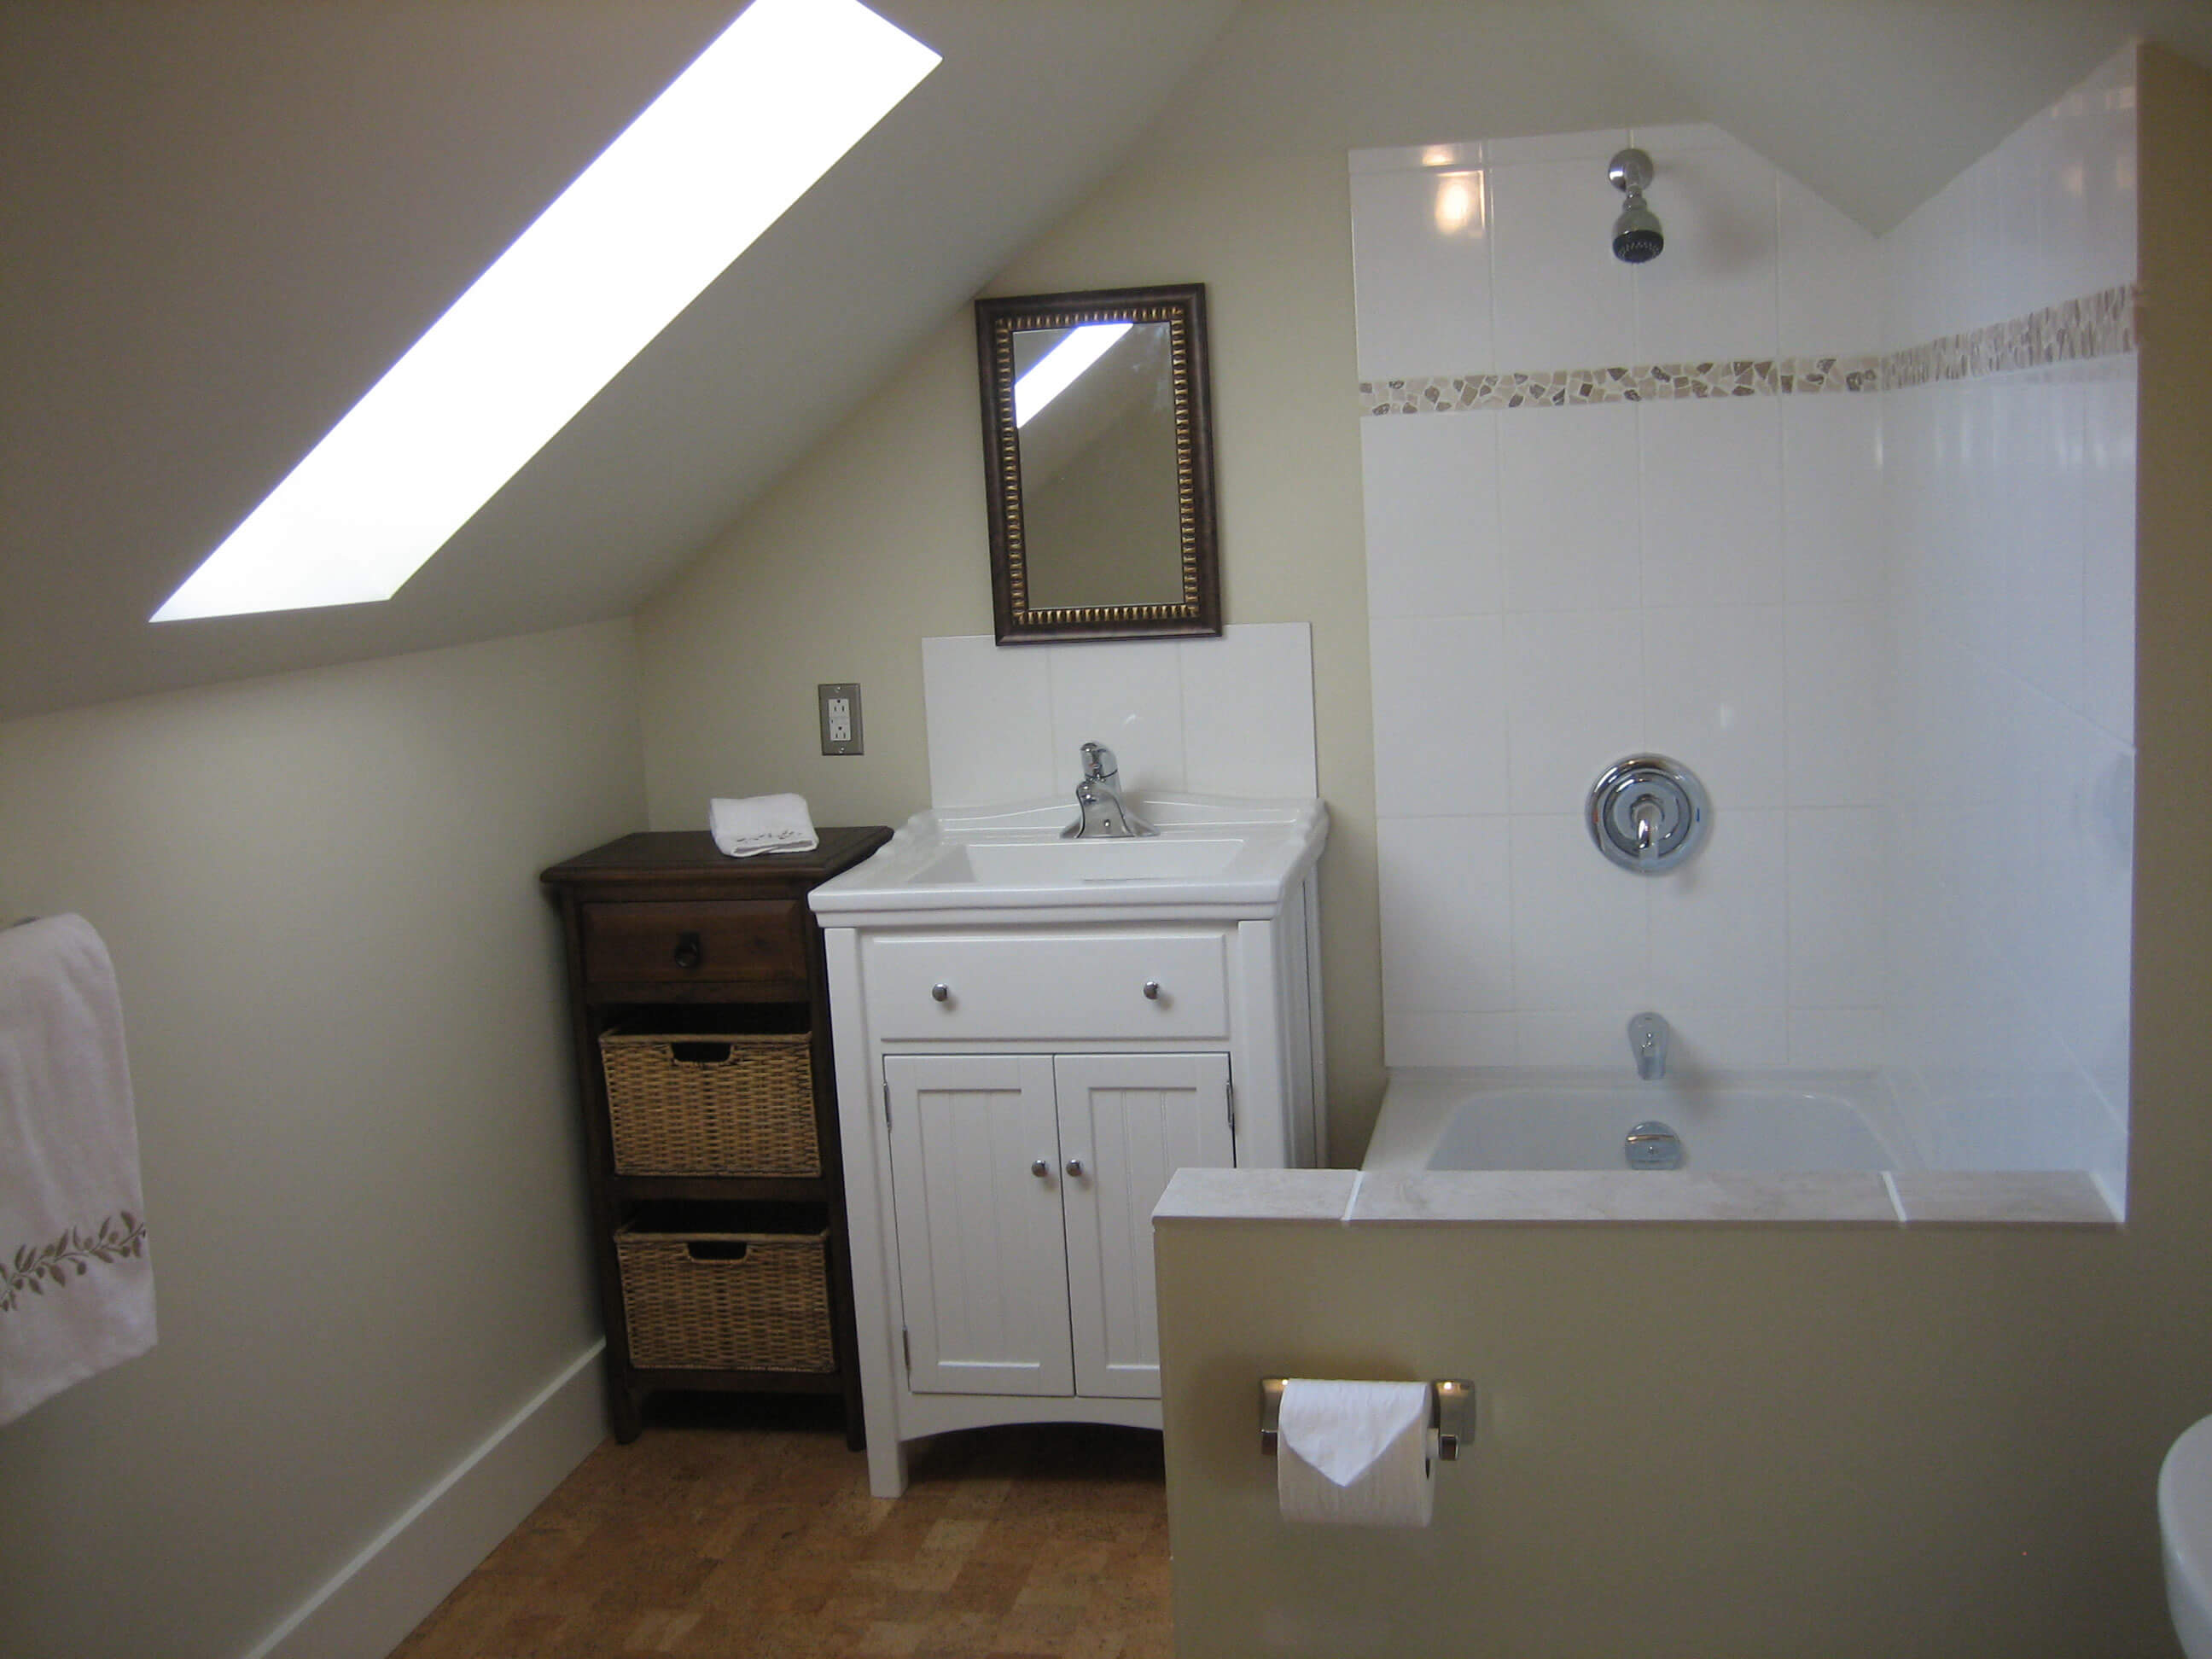 Bathroom - After